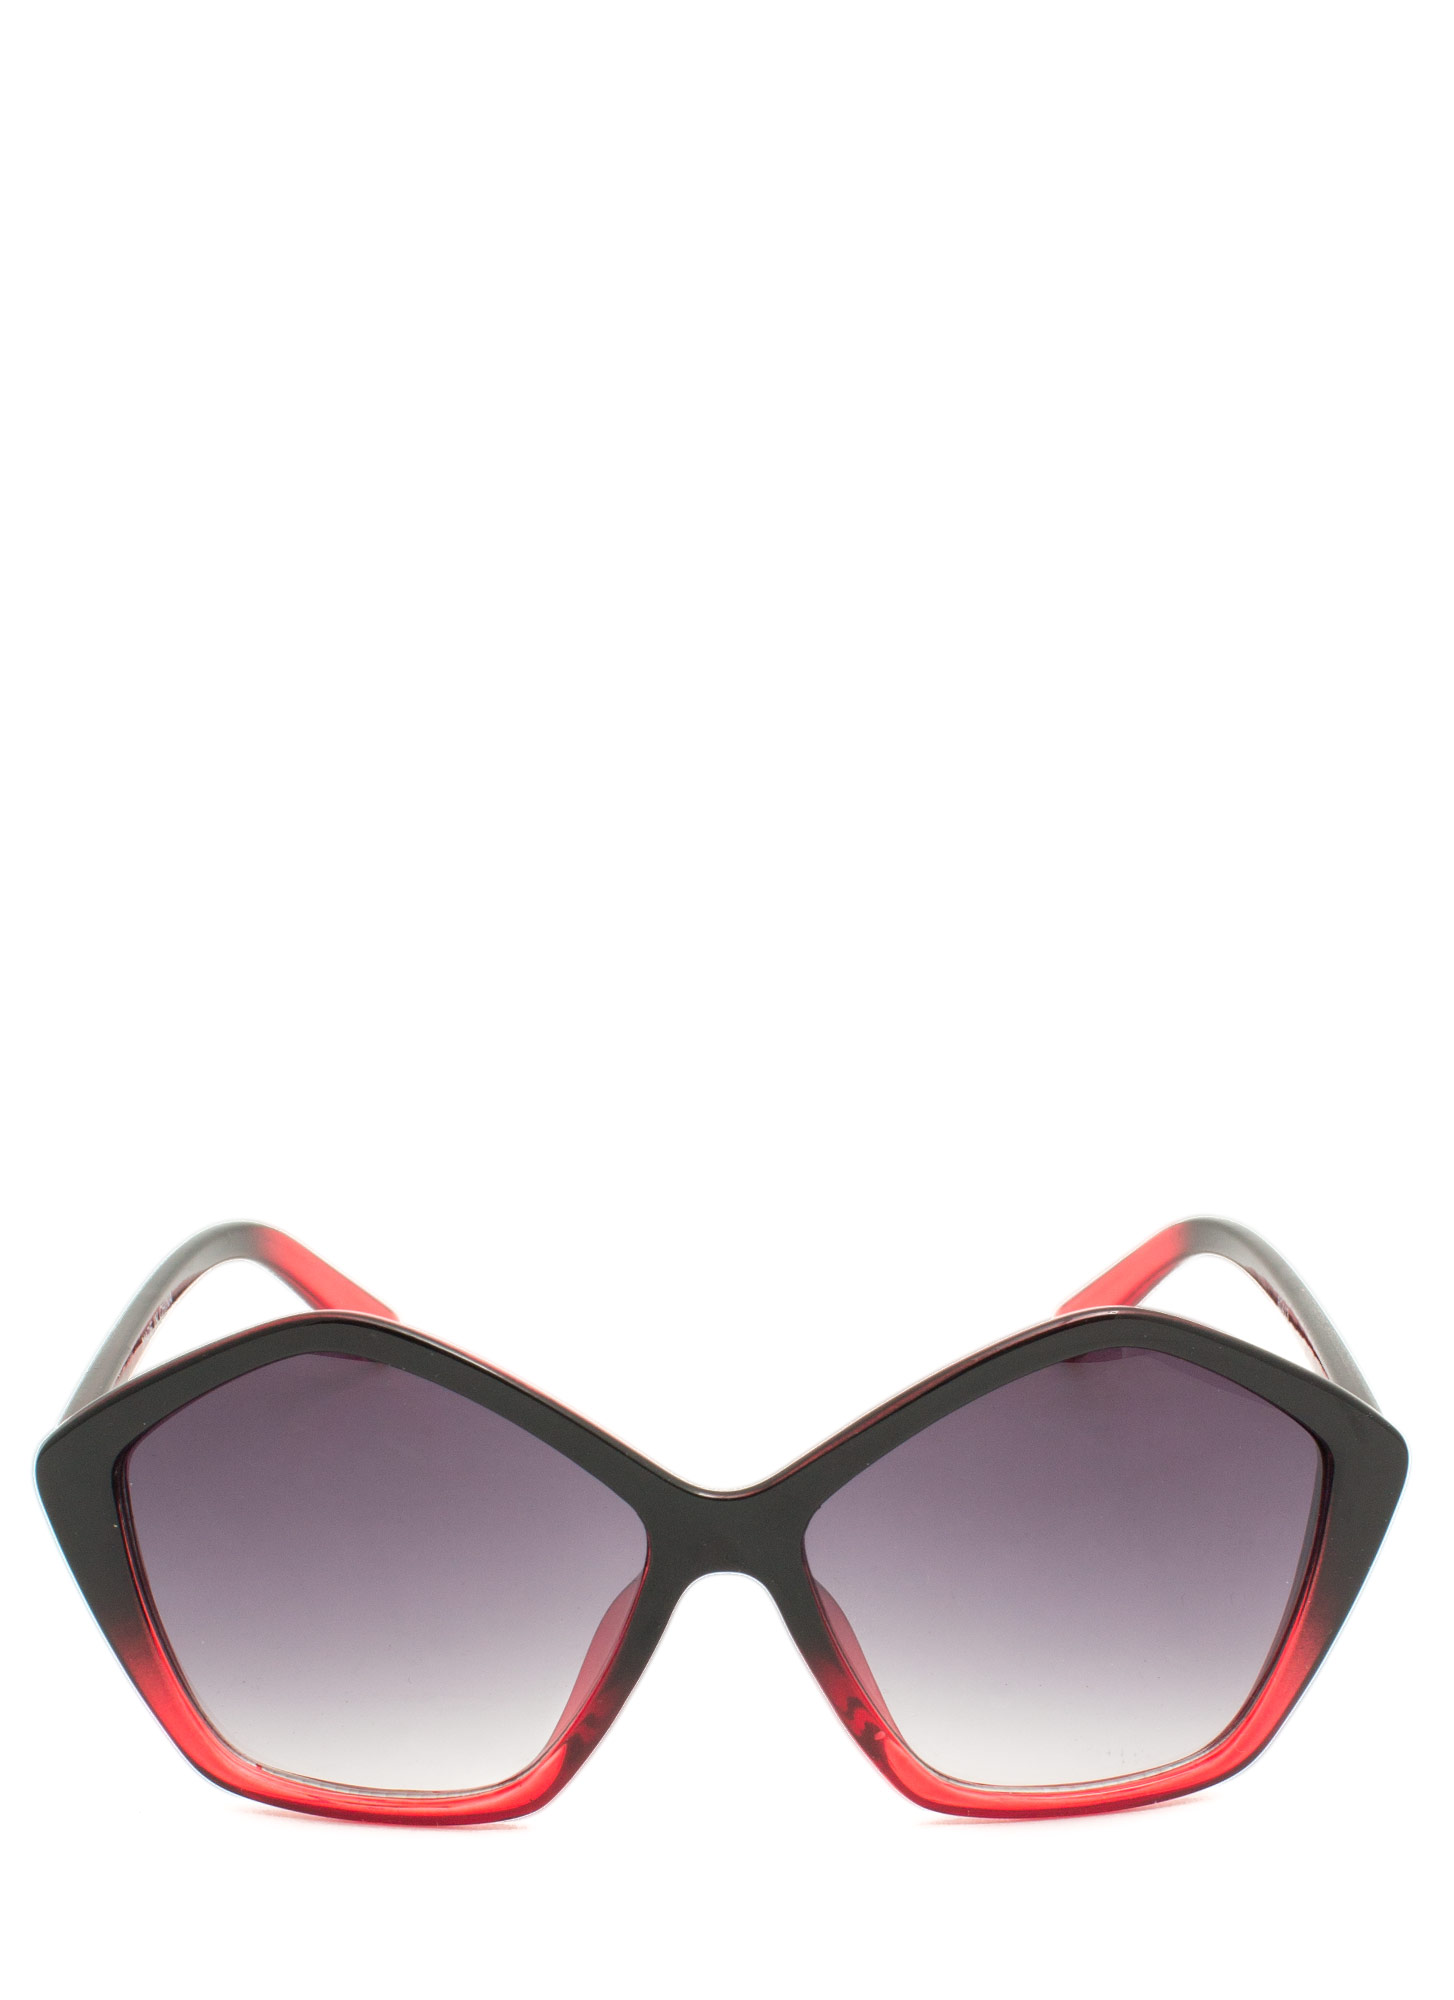 Pentagon Resin Sunglasses REDBLACK